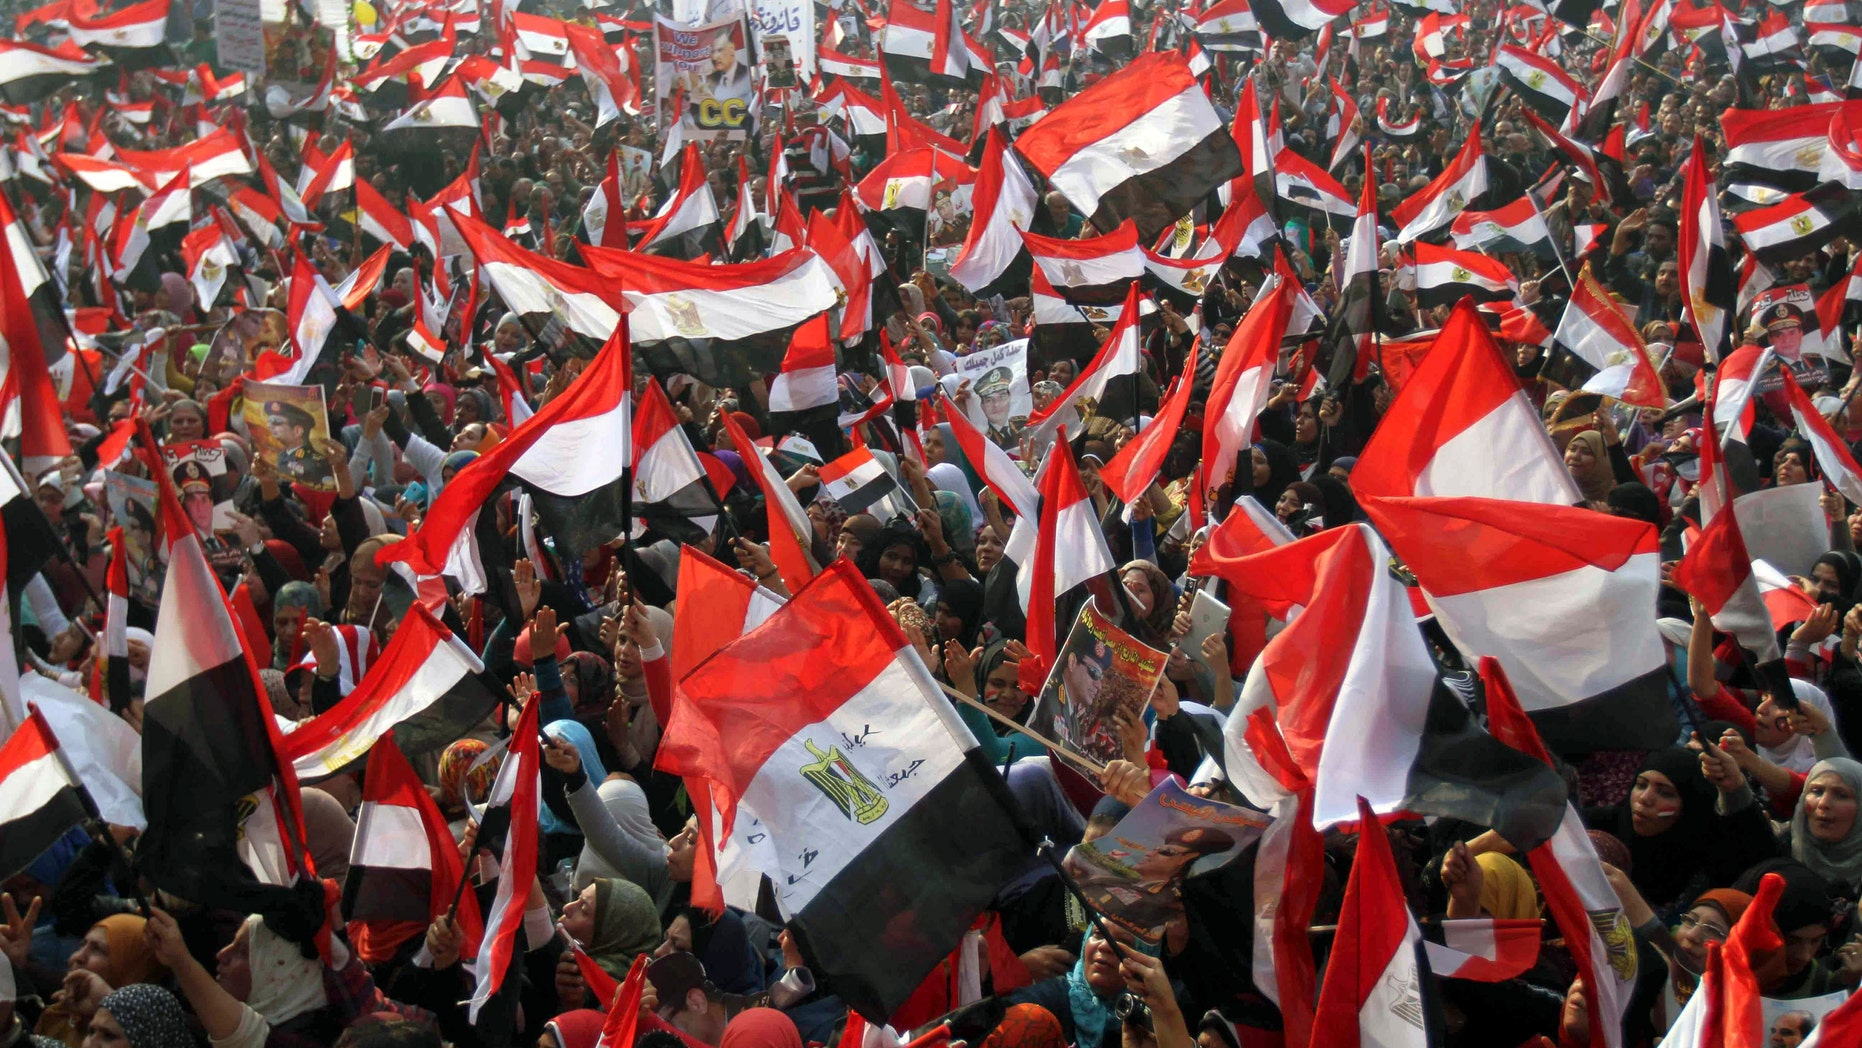 Jan. 25, 2014: Supporters of Egypt';s army and police gather at Tahrir square in Cairo, on the third anniversary of Egypt's uprising.